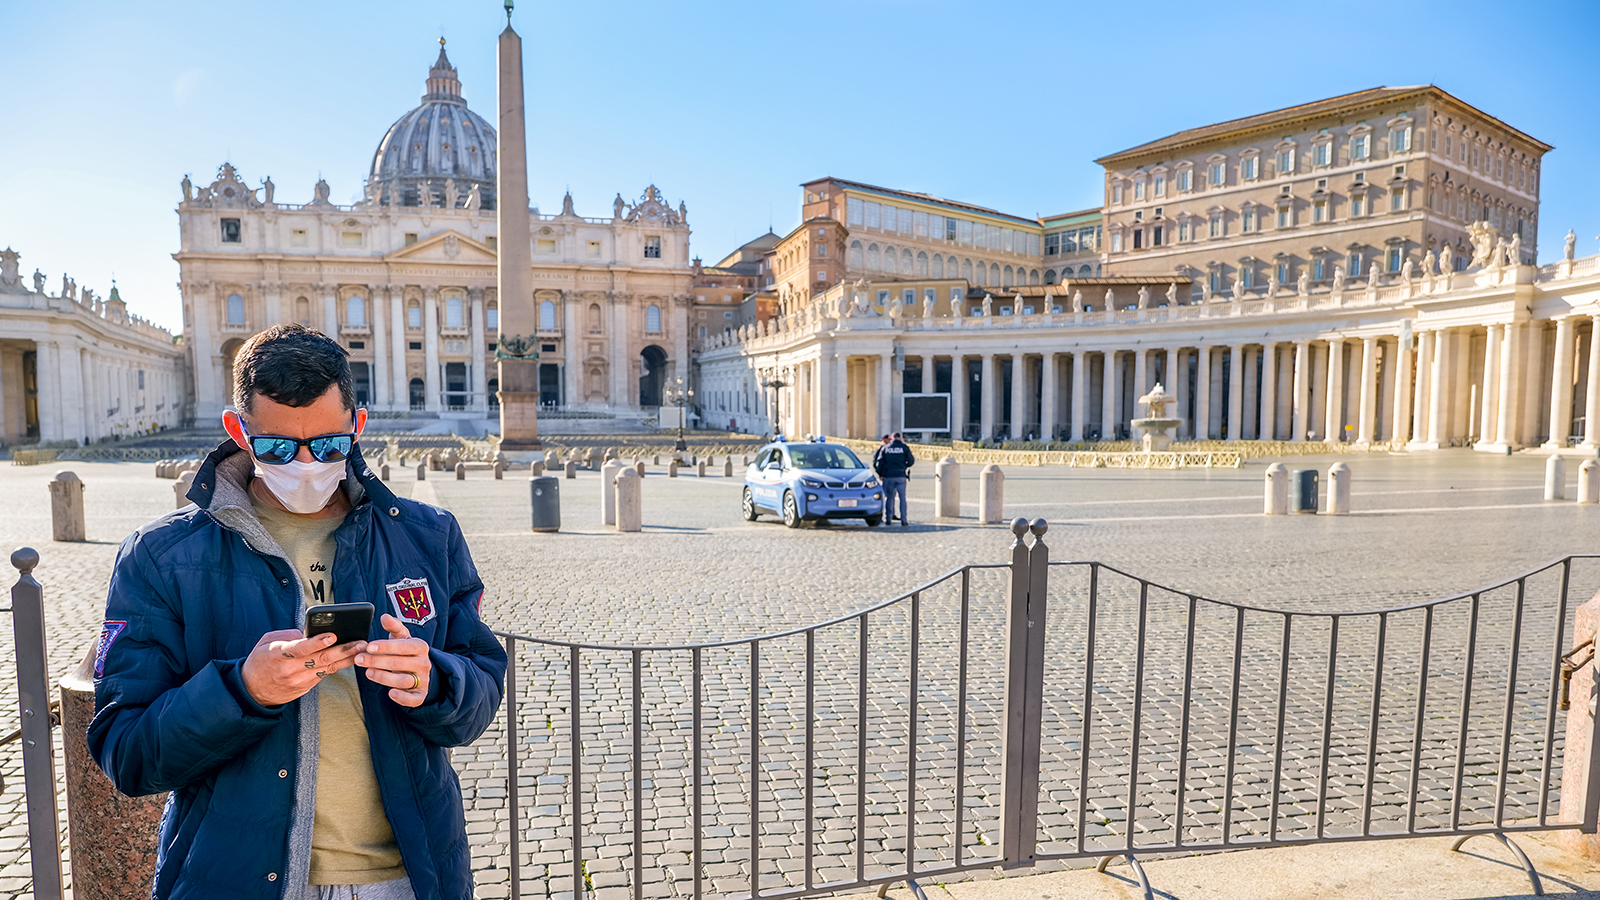 A tourist protected by a medical mask in the square of St. Peter's Basilica, closed to visitors due to COVID-19.